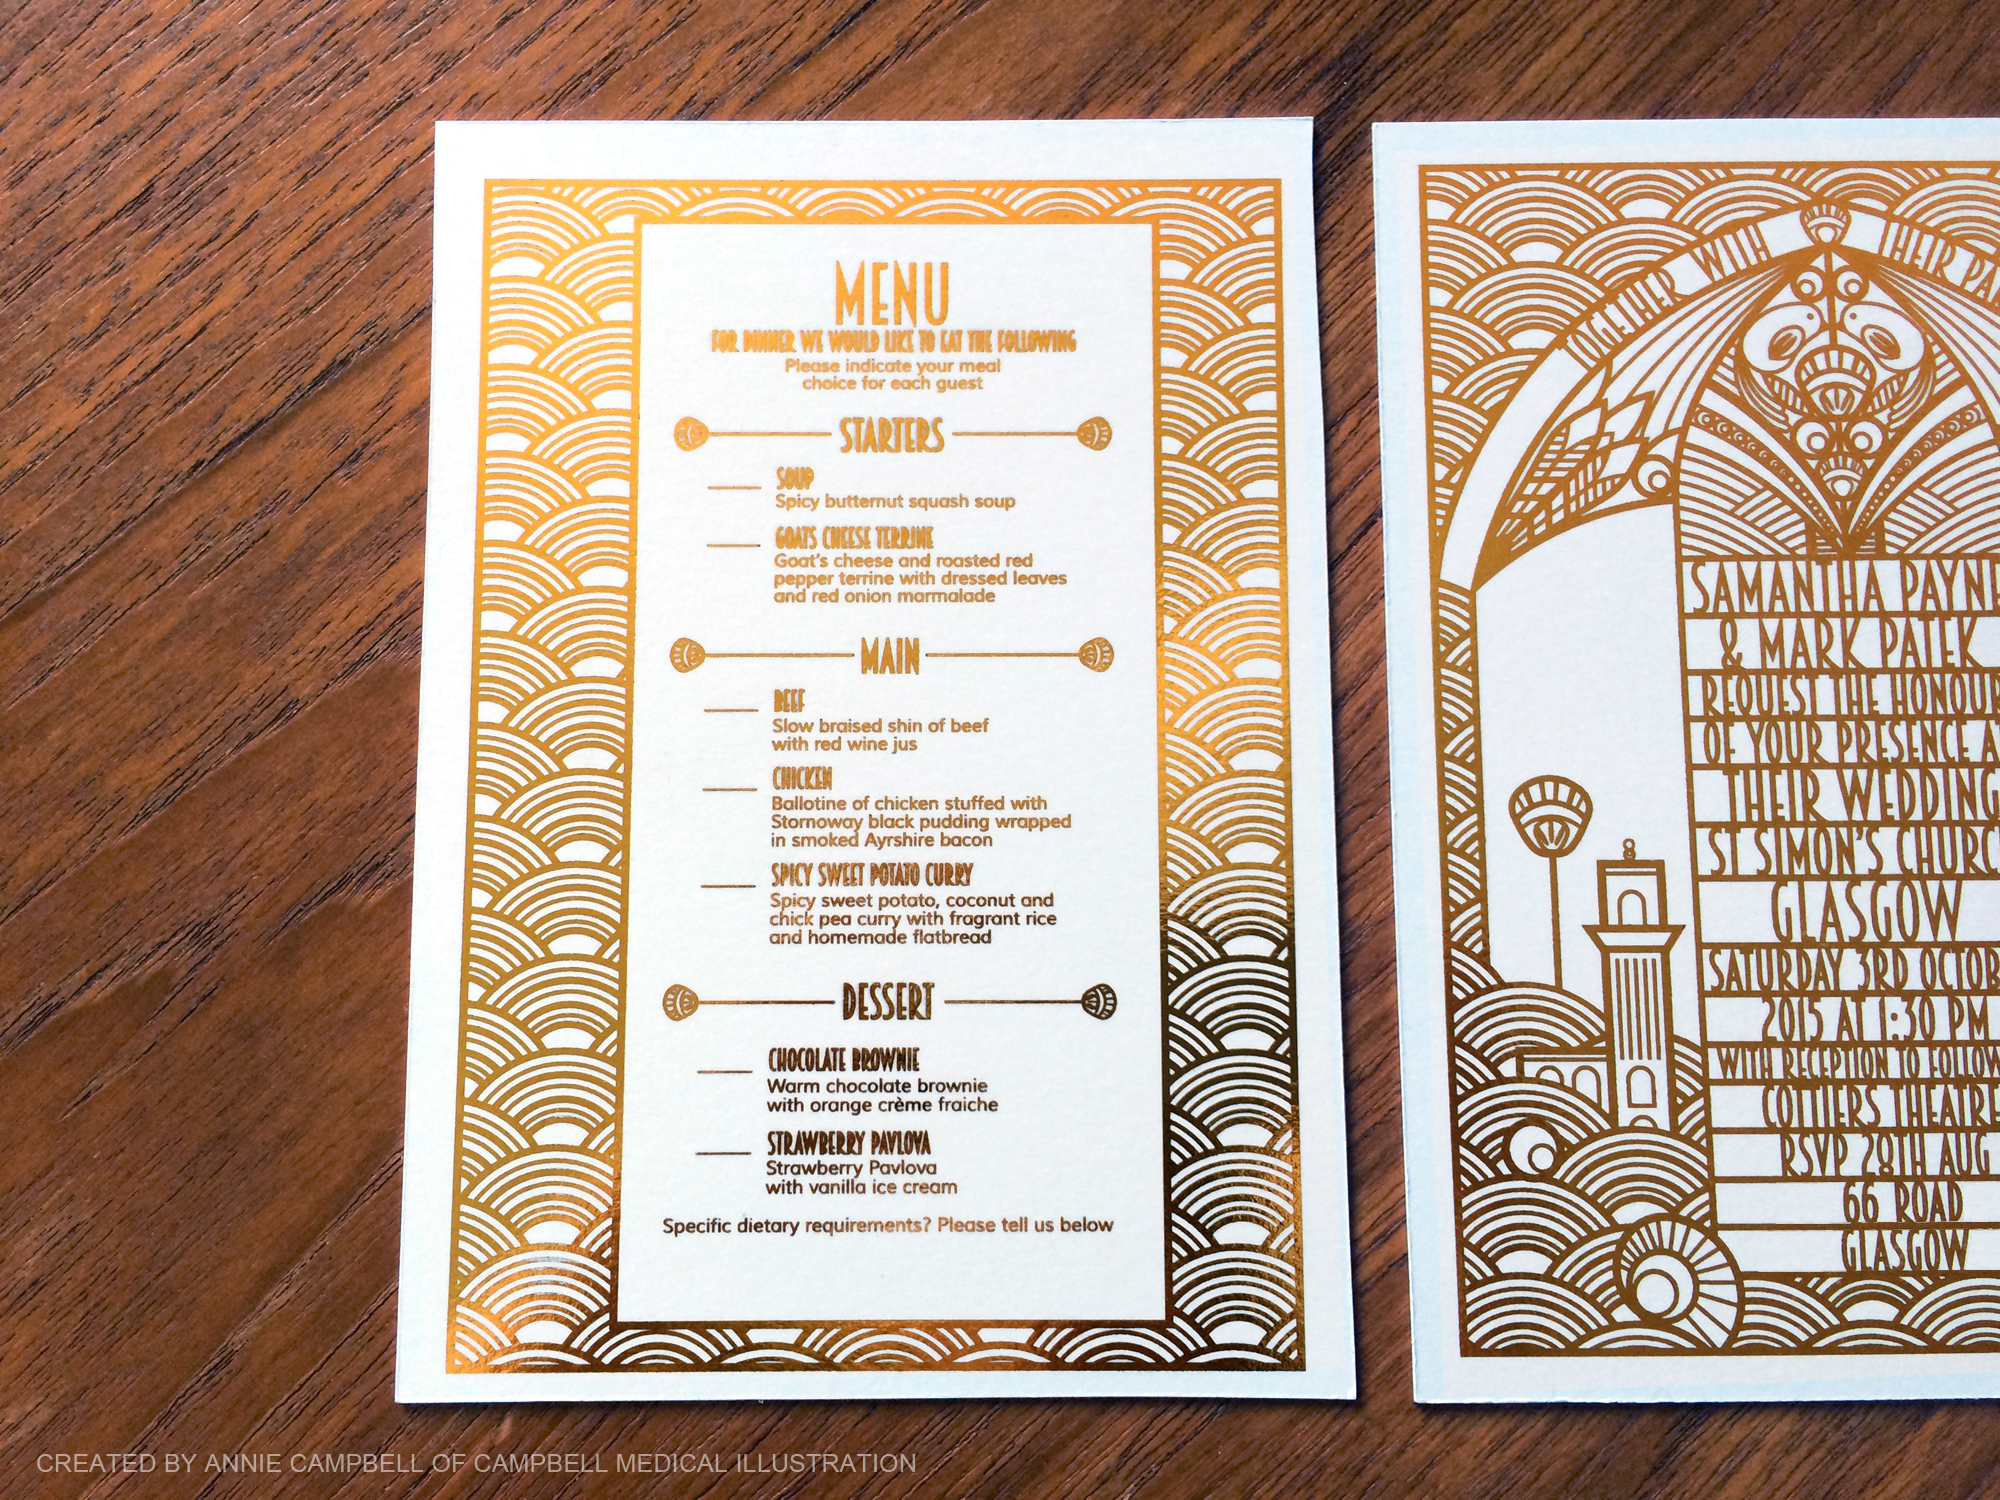 Gold_Press_Cottiers_Glasgow_Art_Deco_Wedding_Invitation_Menu.jpg